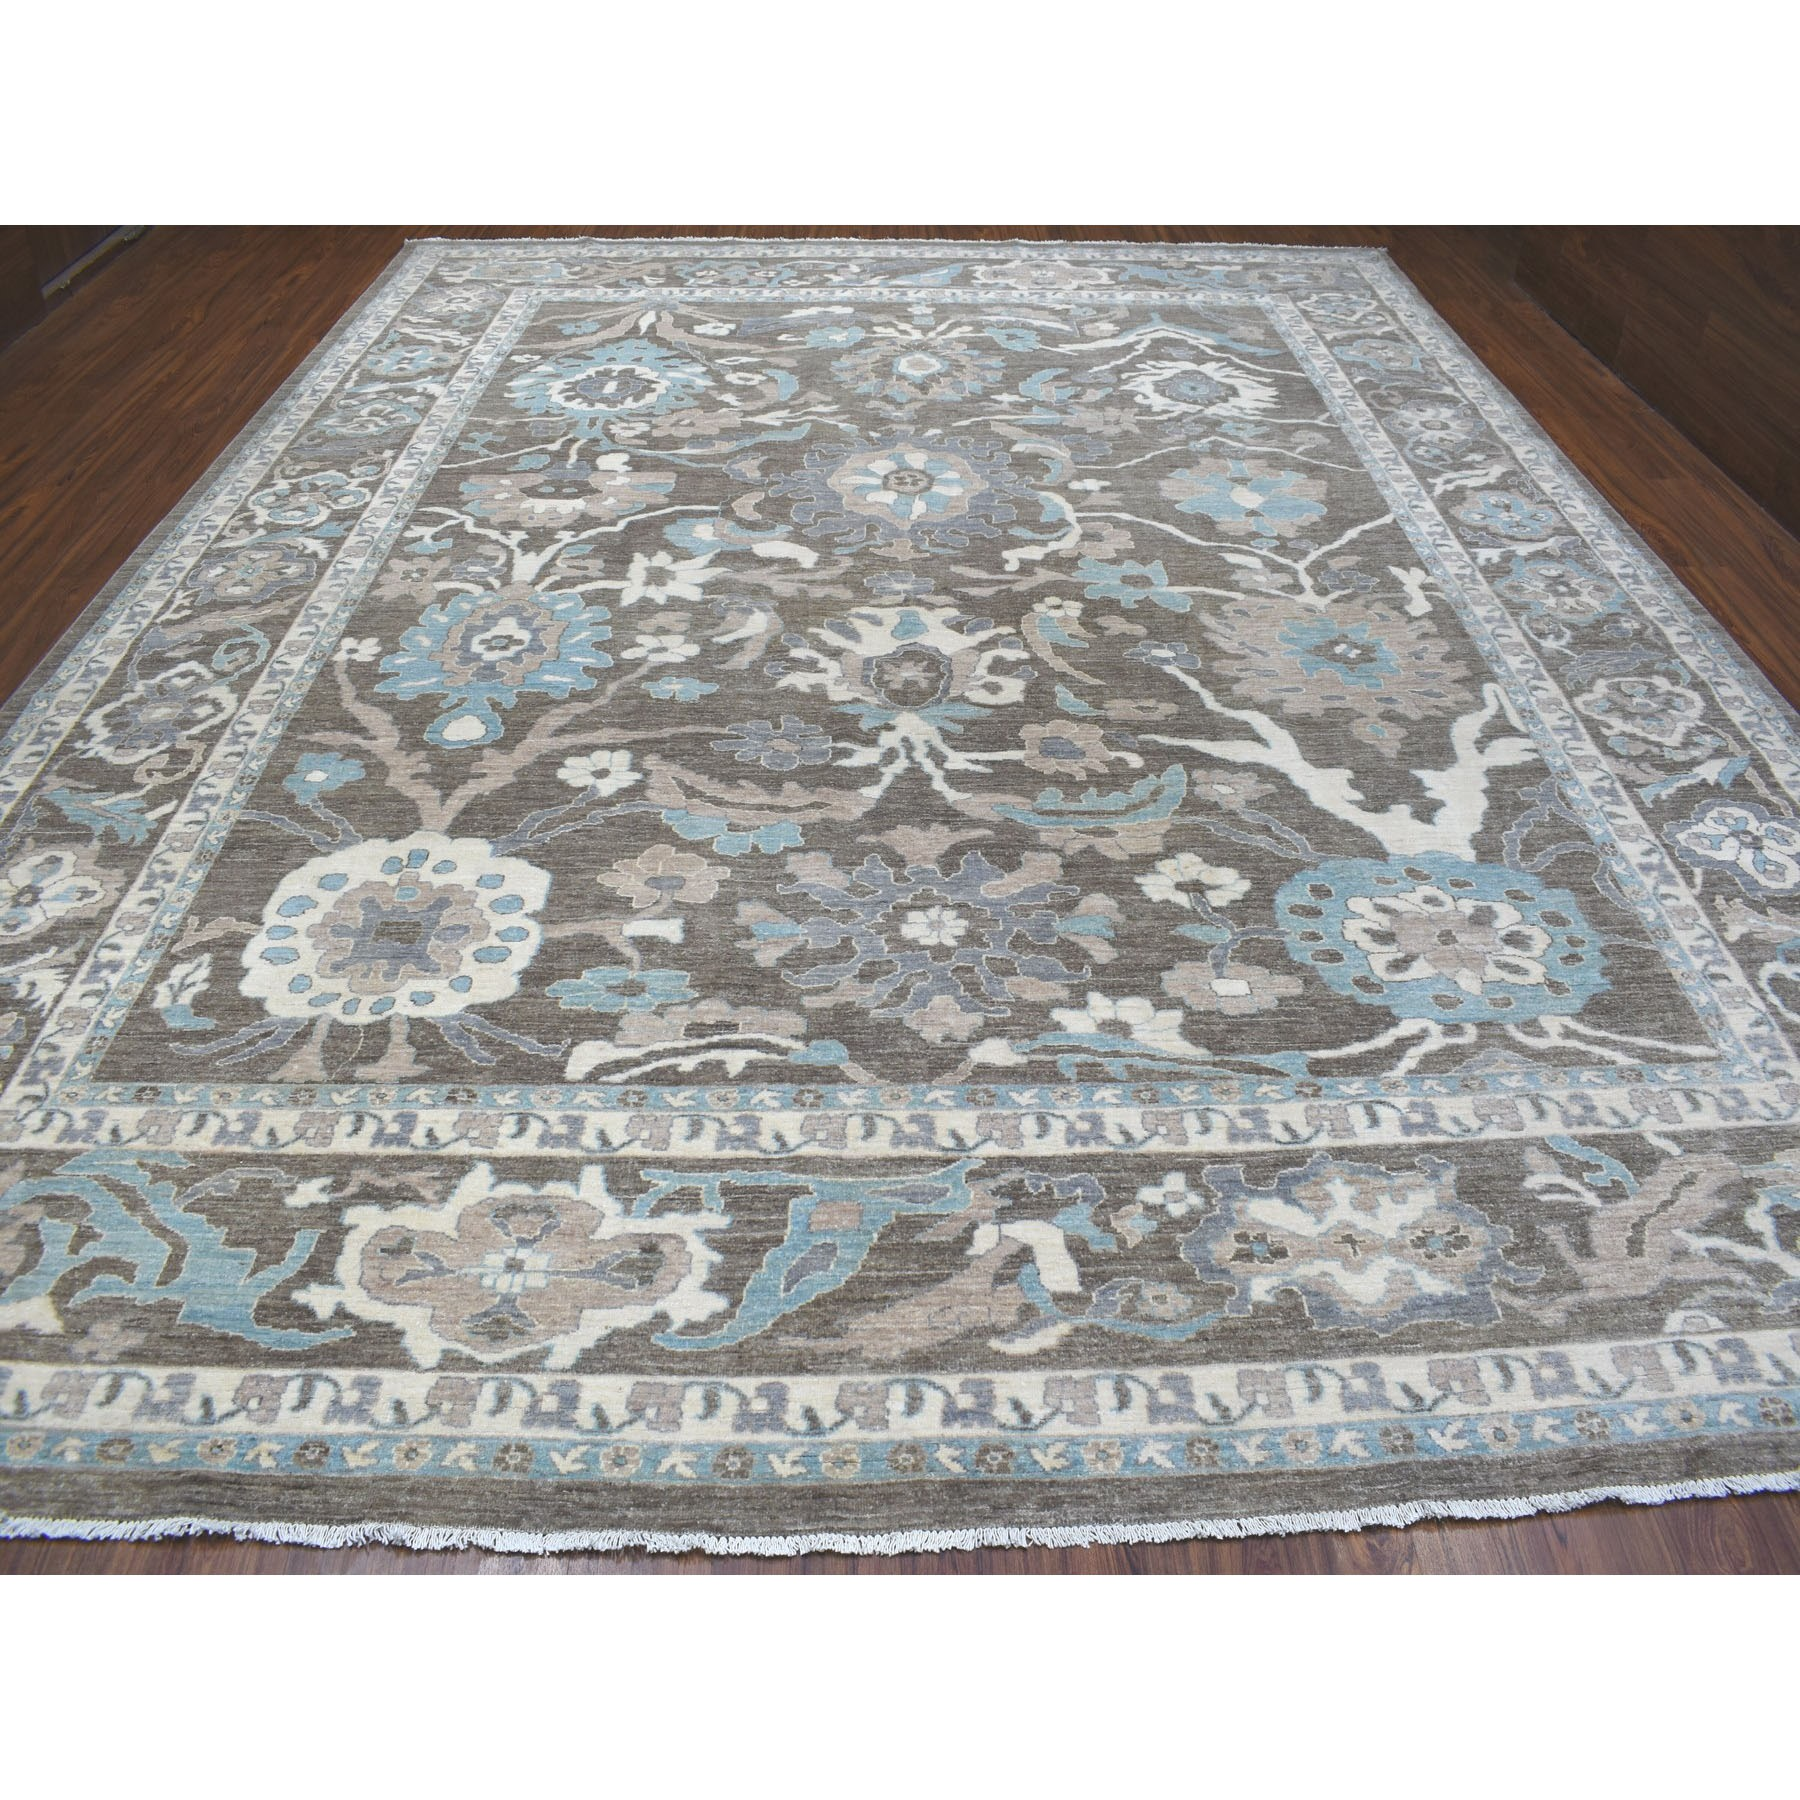 "11'9""x14'5"" Brown Peshawar With Mahal Design Organic Wool Hand Knotted Oversize Oriental Rug"